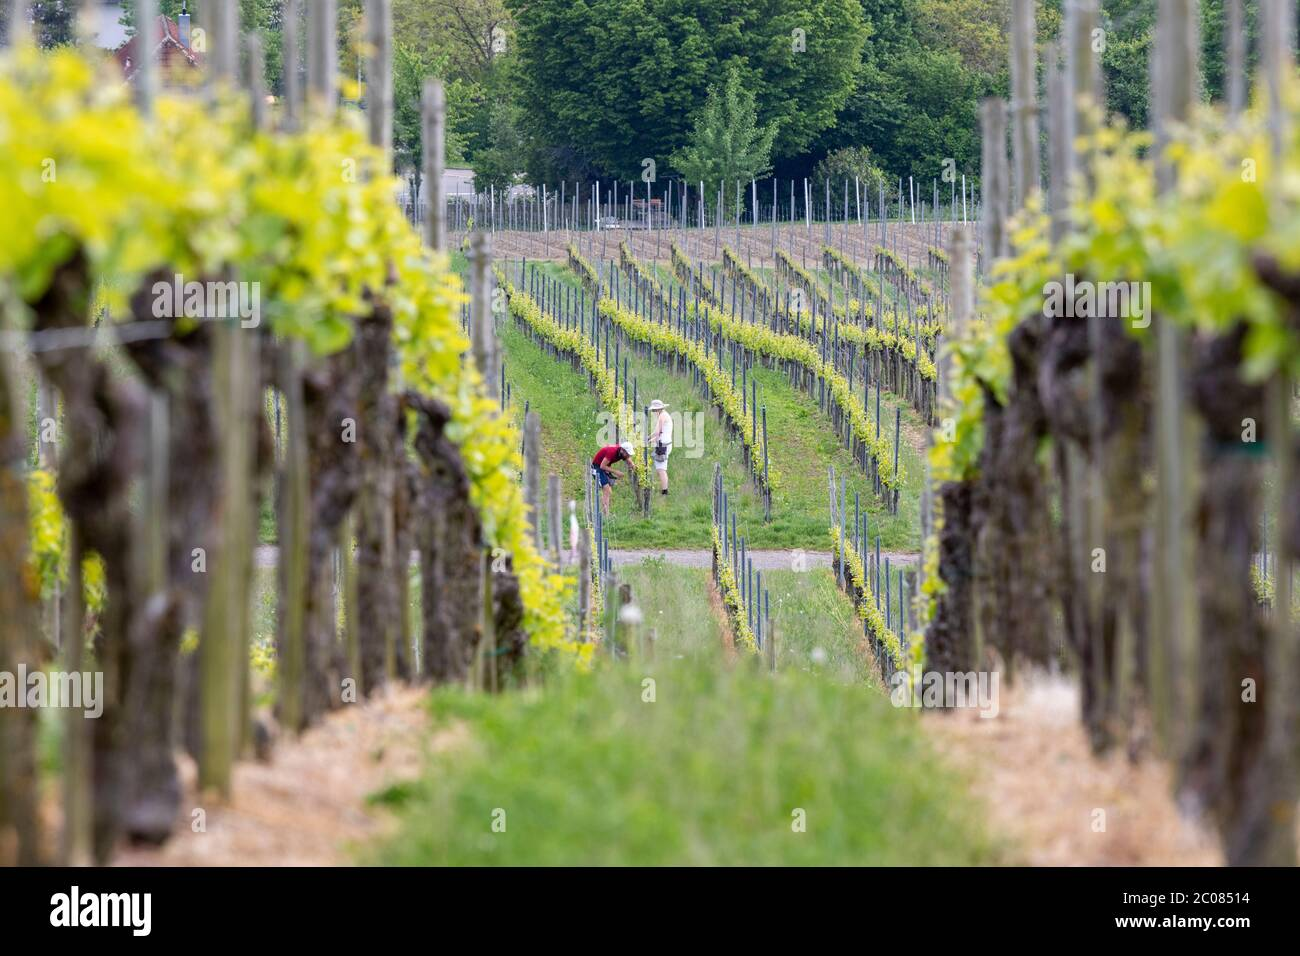 Weinanbau in der Erziehungsphase. Hagnau, 08.05.2020 Stock Photo